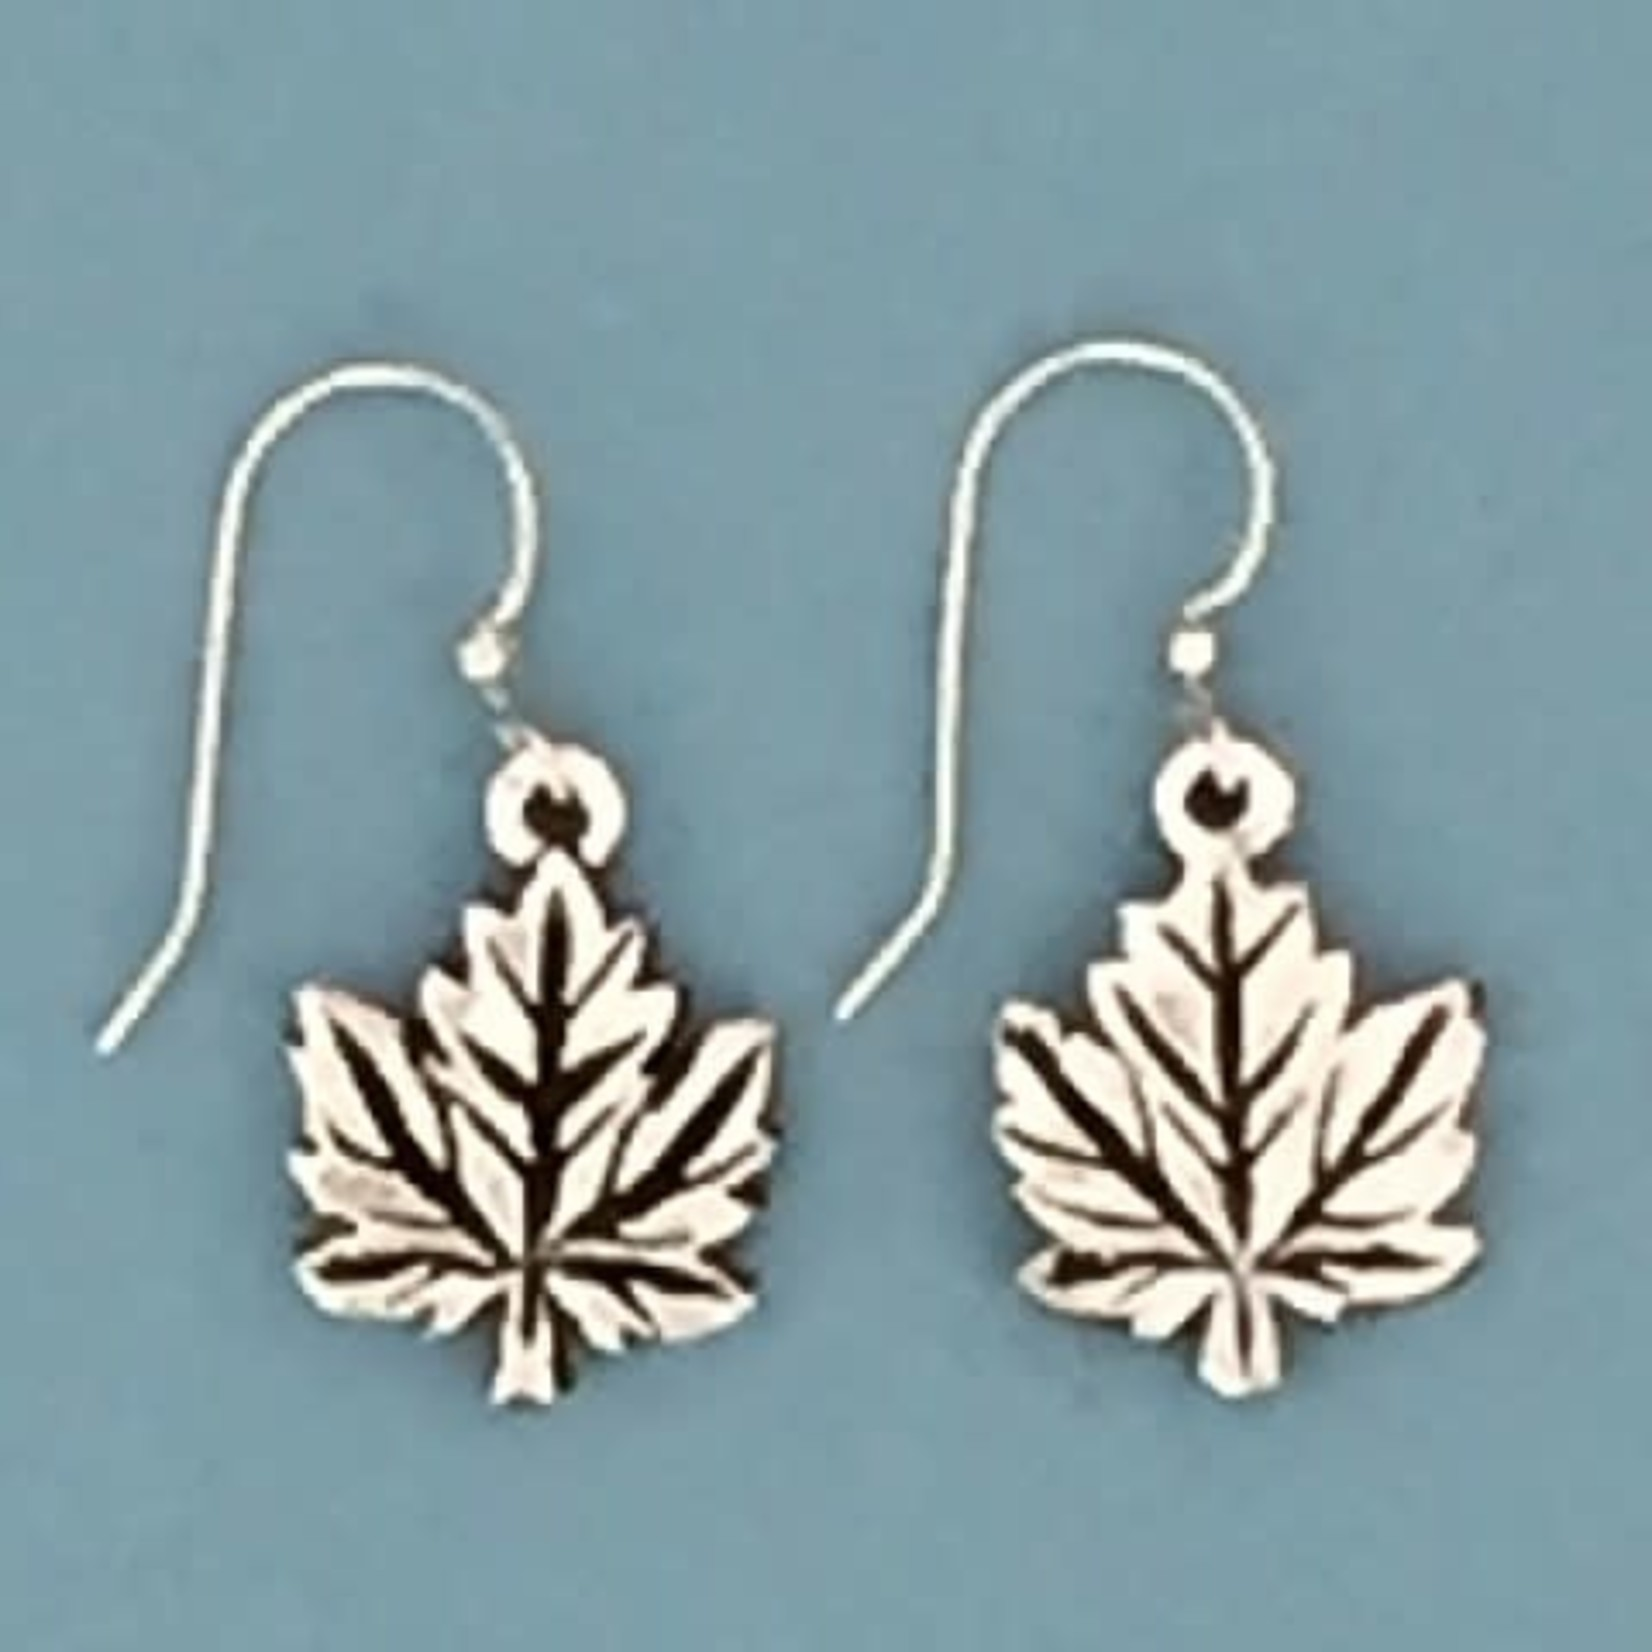 Basic Spirit Basic Spirit Earring